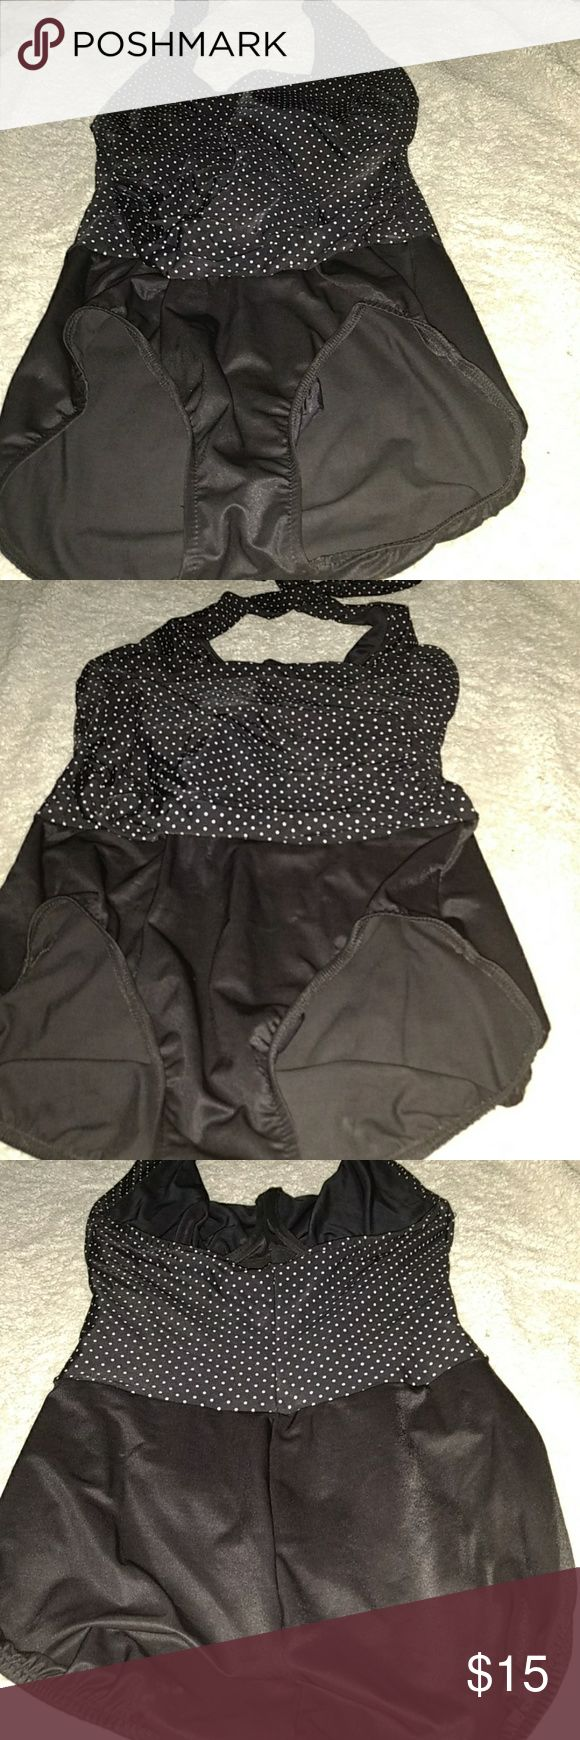 Eddie Bauer Swim suit. Wore 1x. Miraculous suit Black with white polk dots on top. Under wire bra , the top ia blousy to flatter, it has hidden stomach panel, very noce suit Eddie Bauer Swim One Pieces